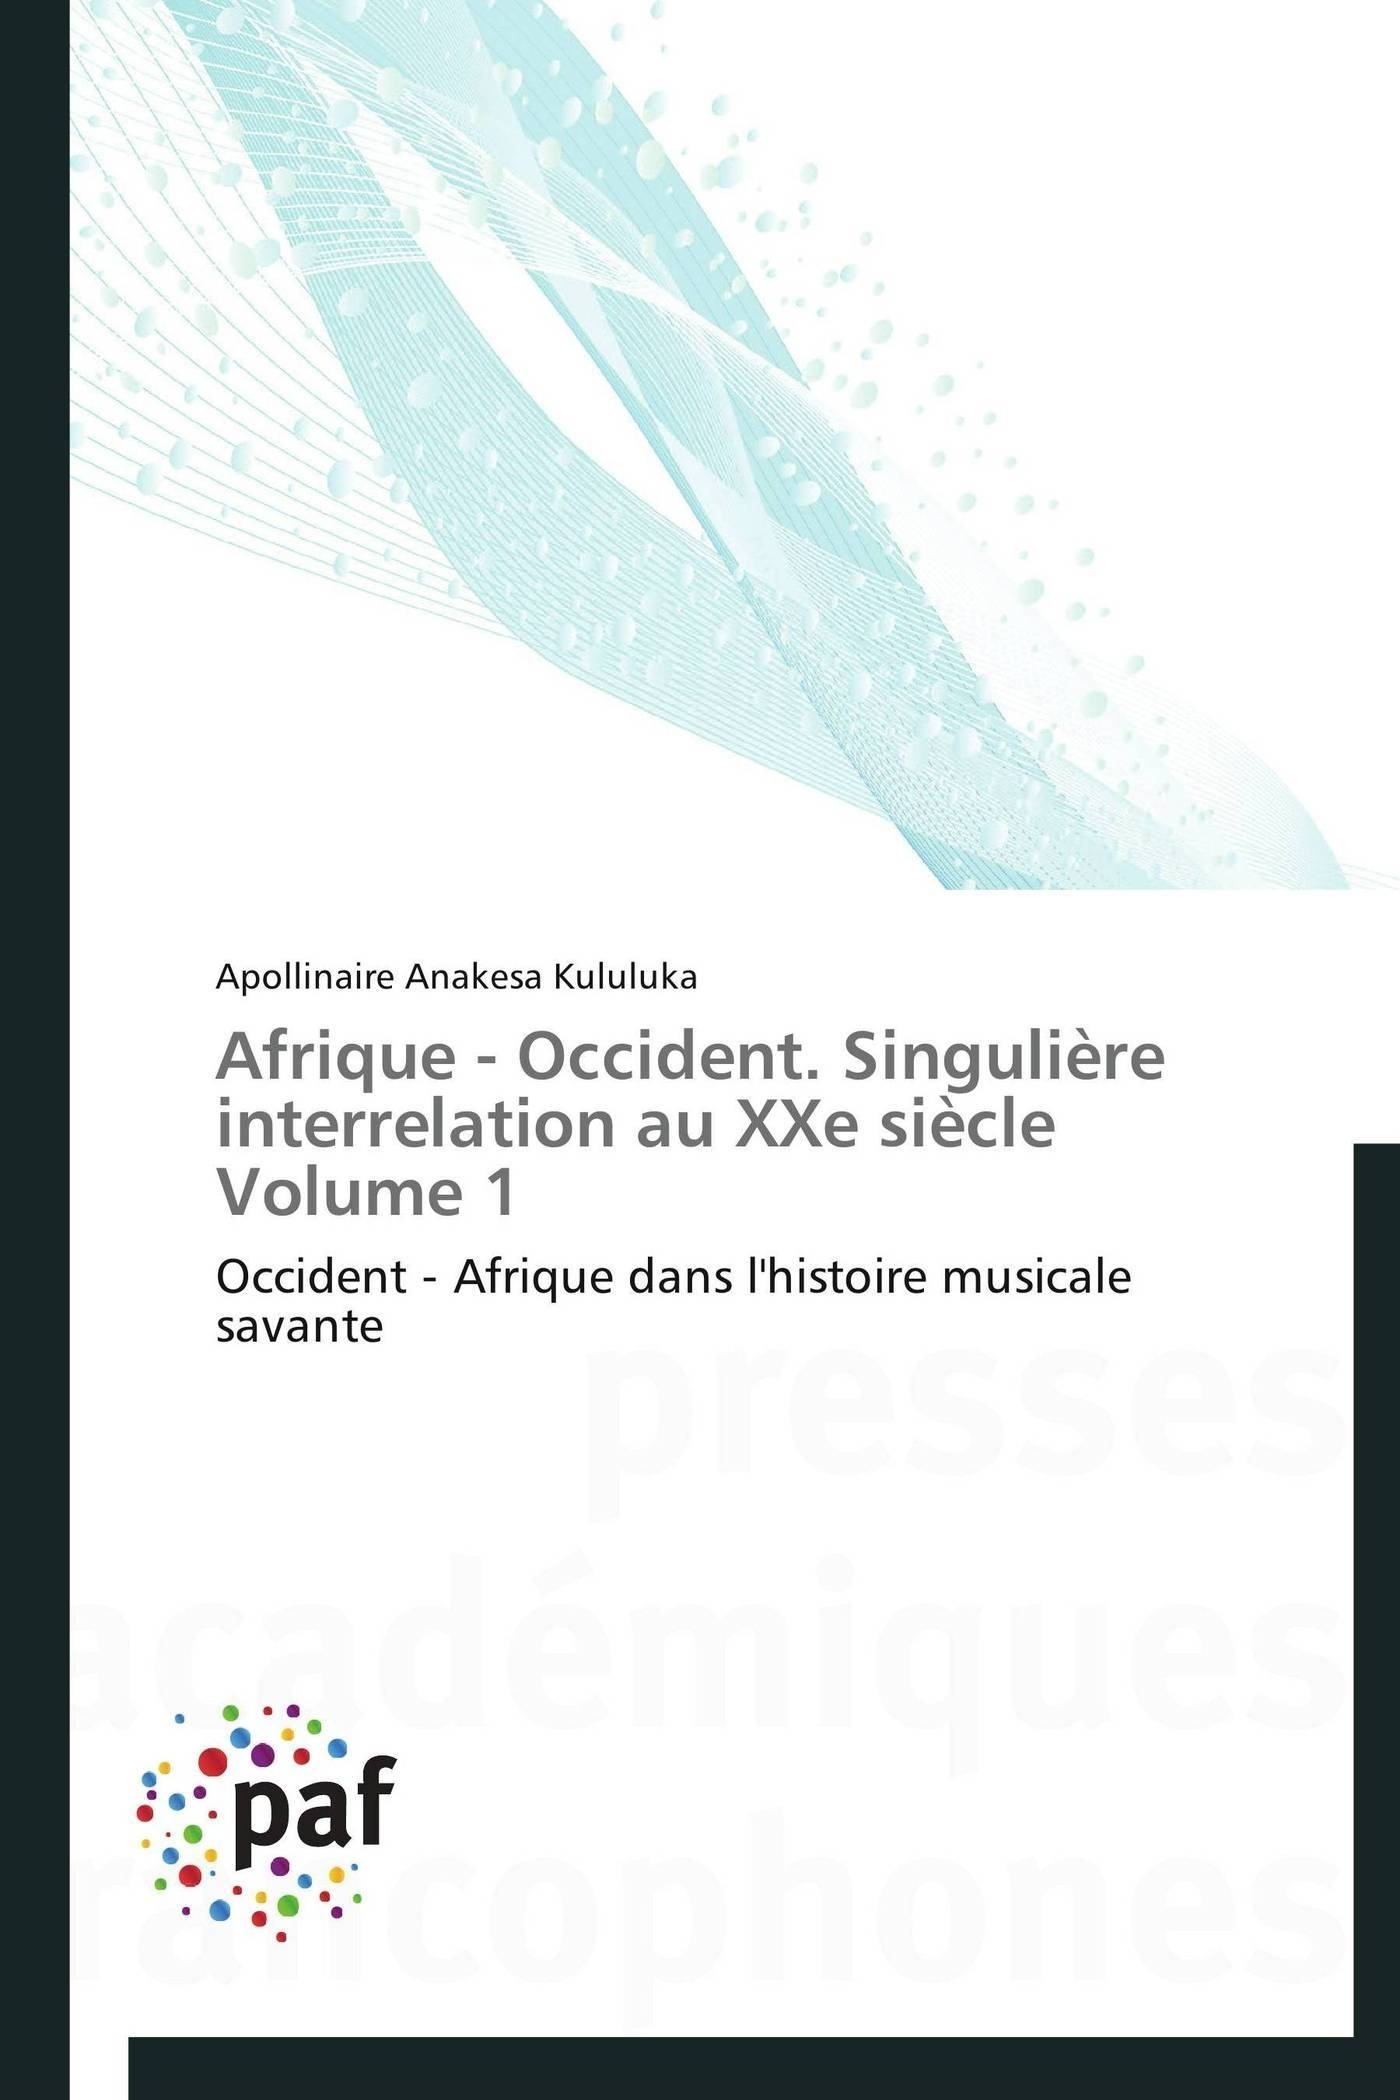 AFRIQUE - OCCIDENT. SINGULIERE INTERRELATION AU XXE SIECLE VOLUME 1